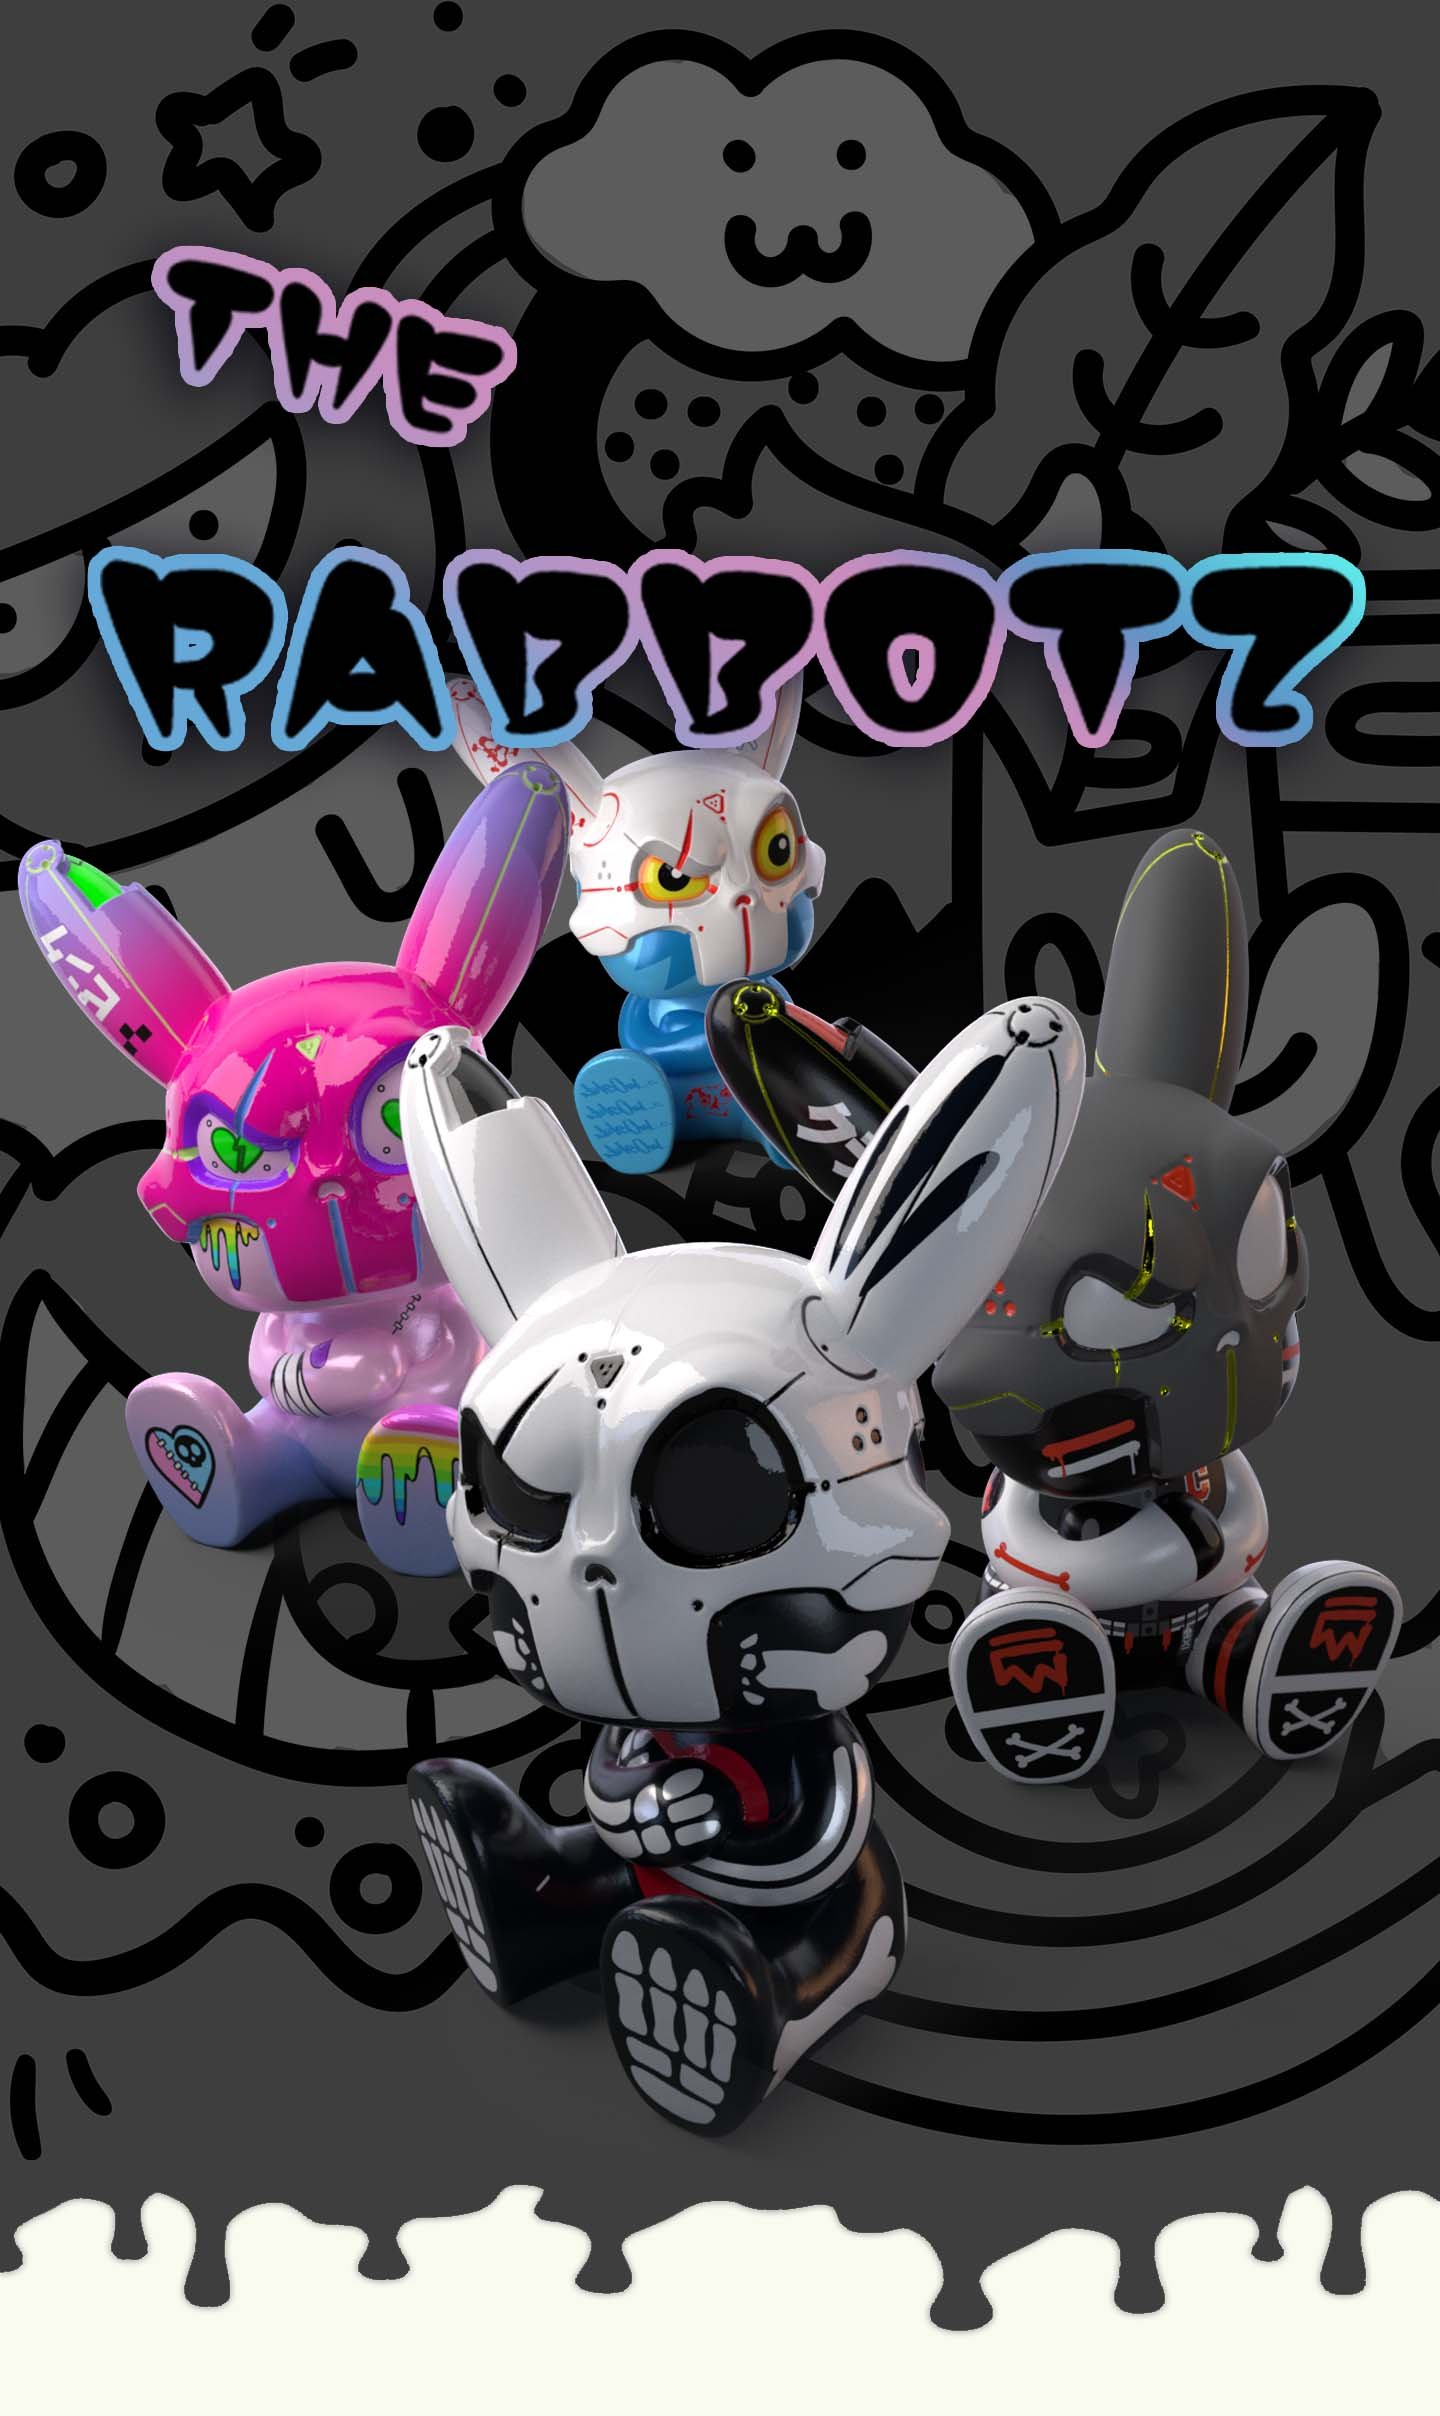 The Rabbotz official promo image